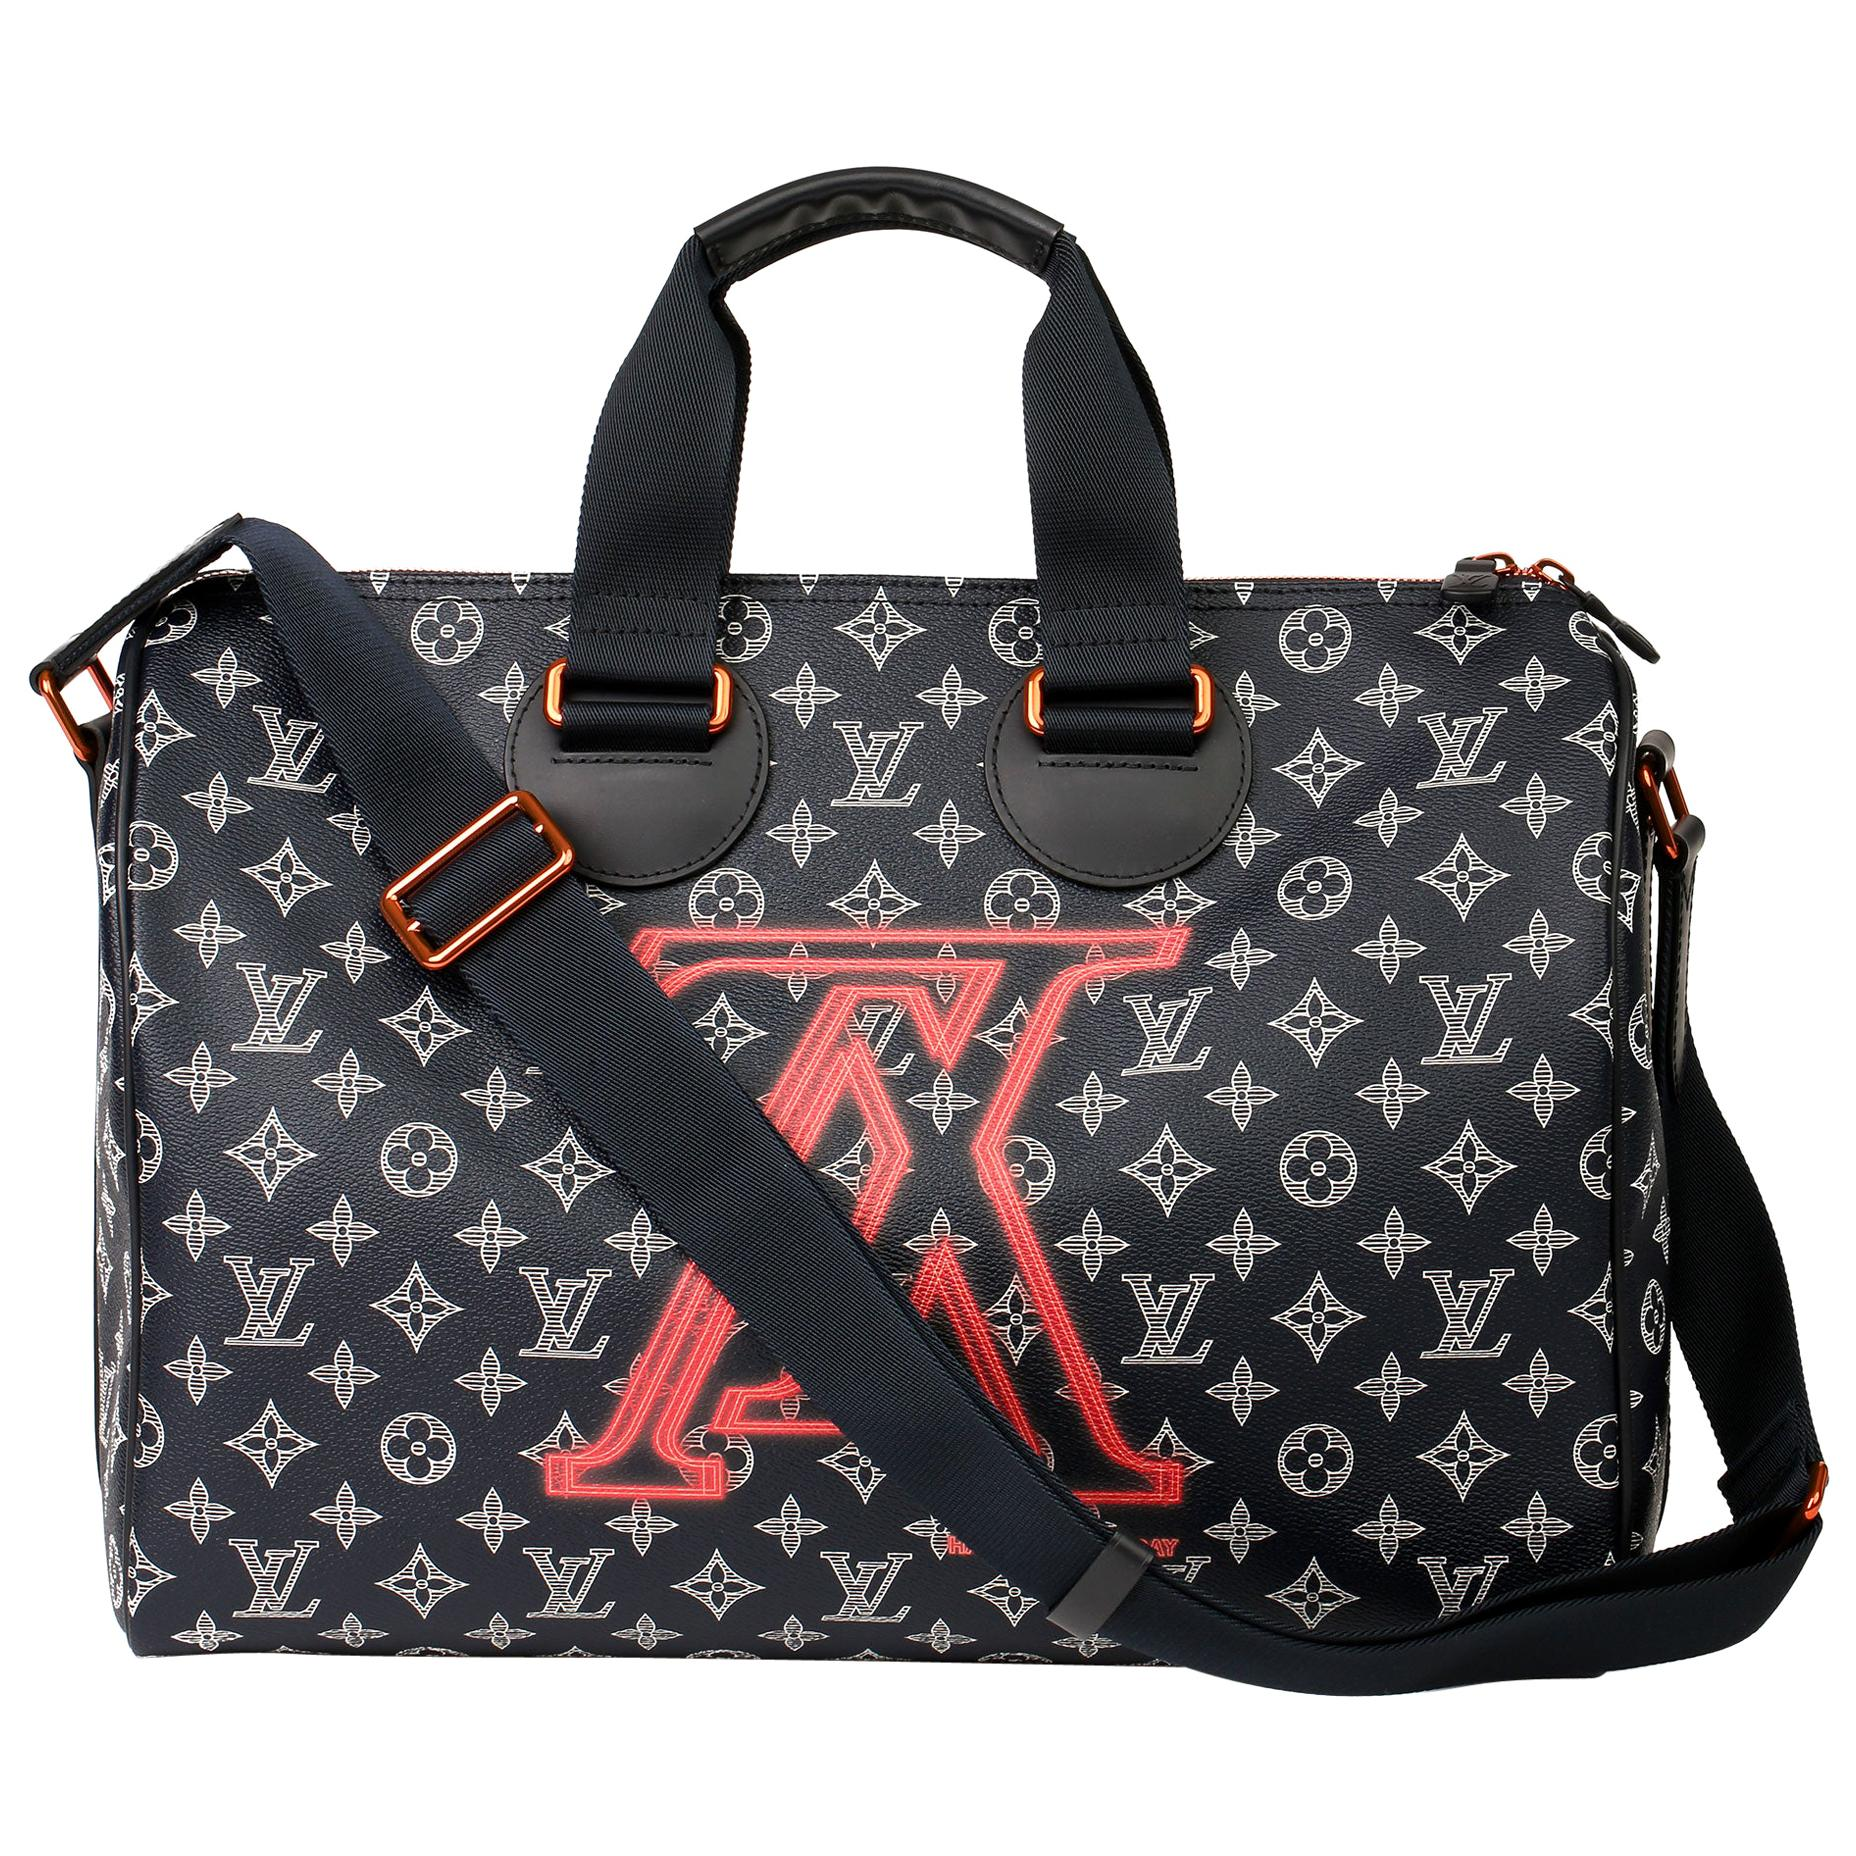 2018 Louis Vuitton Navy Pacific Monogram Canvas & Leather Upside Down Speedy 40